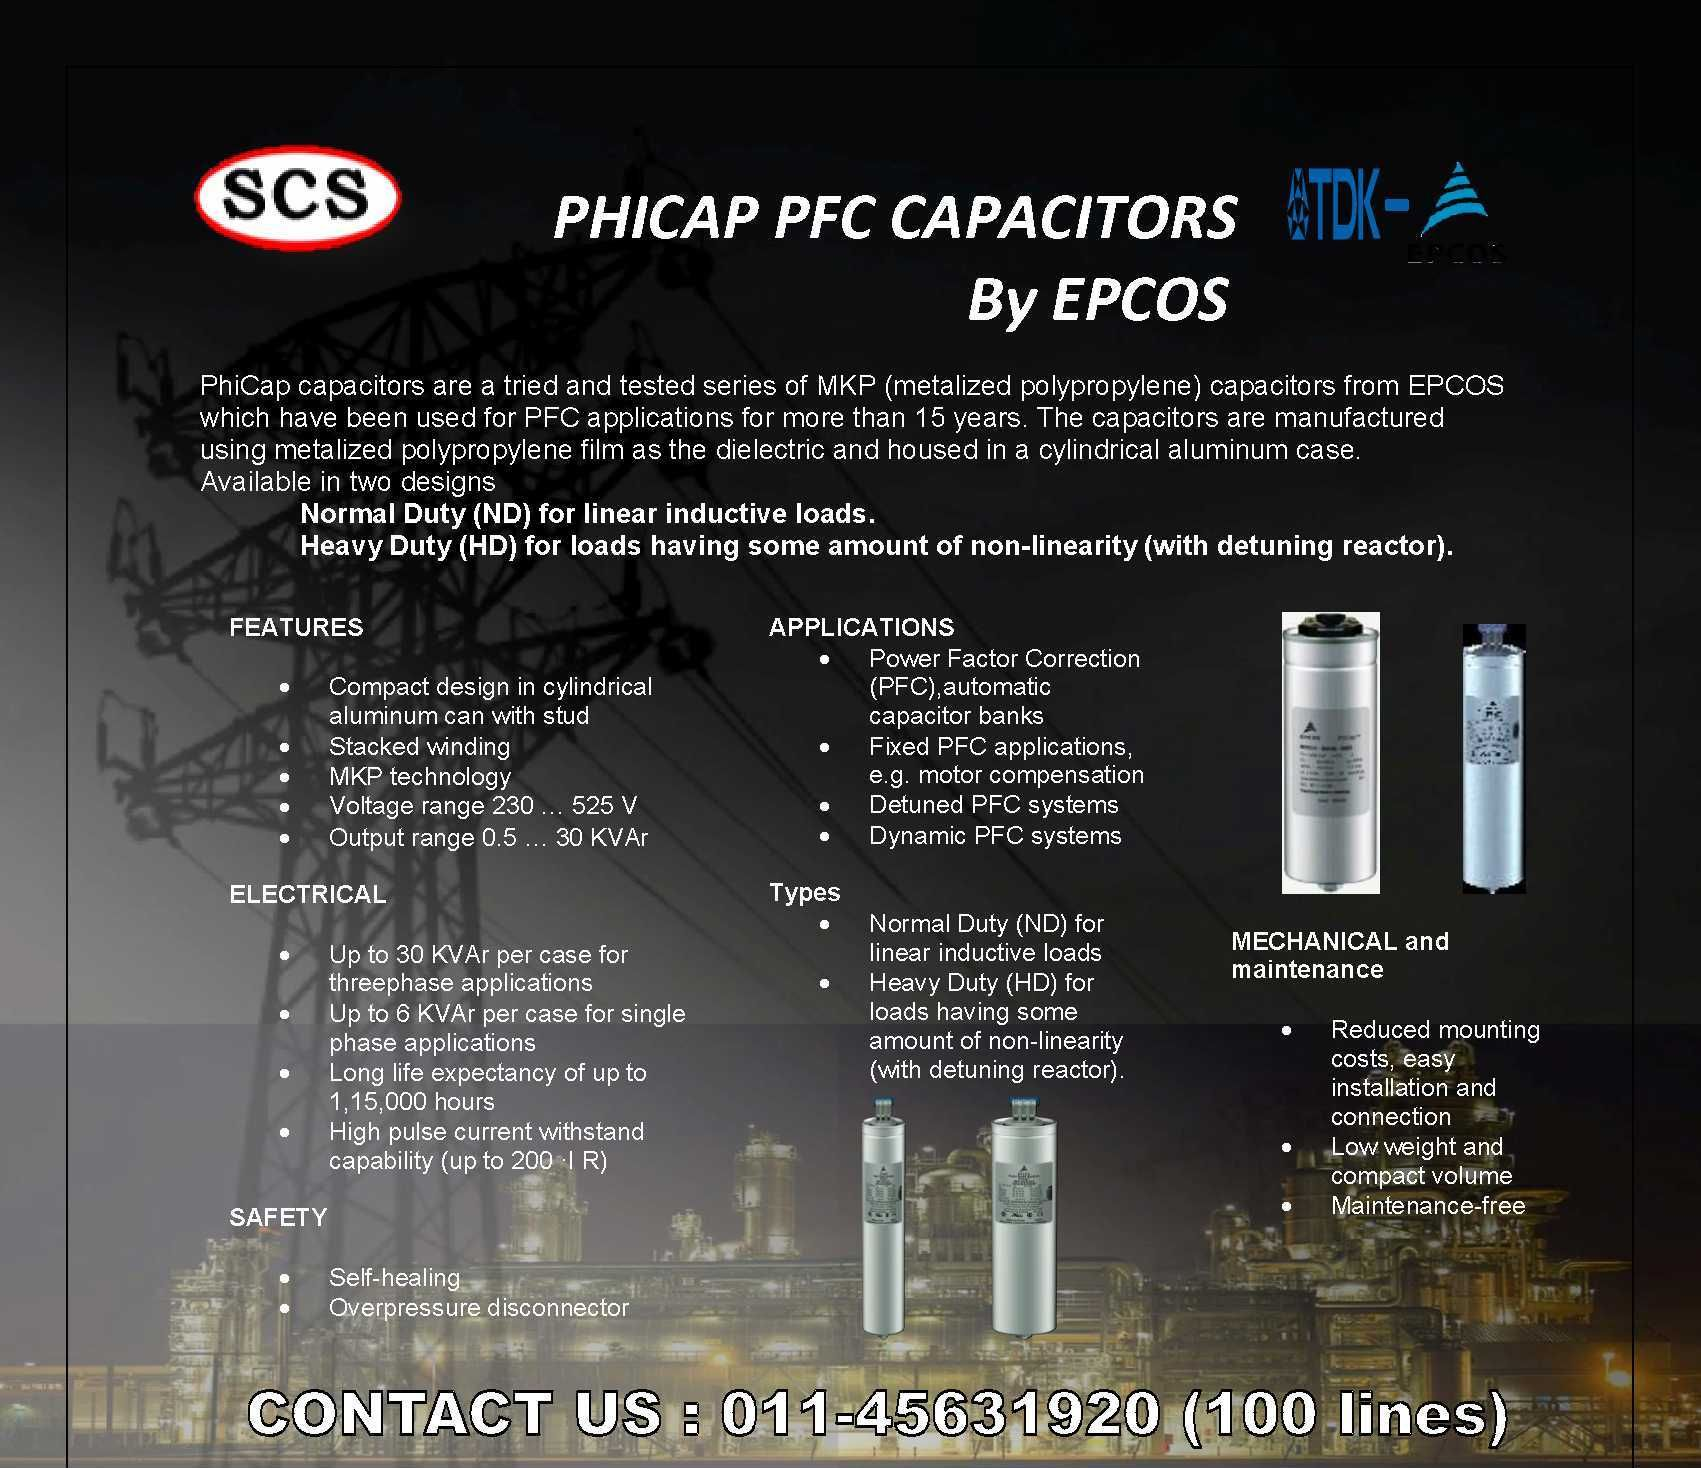 Phicap Capacitors Available Order At Sales Systemcontrols Co In Or Call Us On 011 45631920 100 Lines Capacitors Scs Consumer Electronics